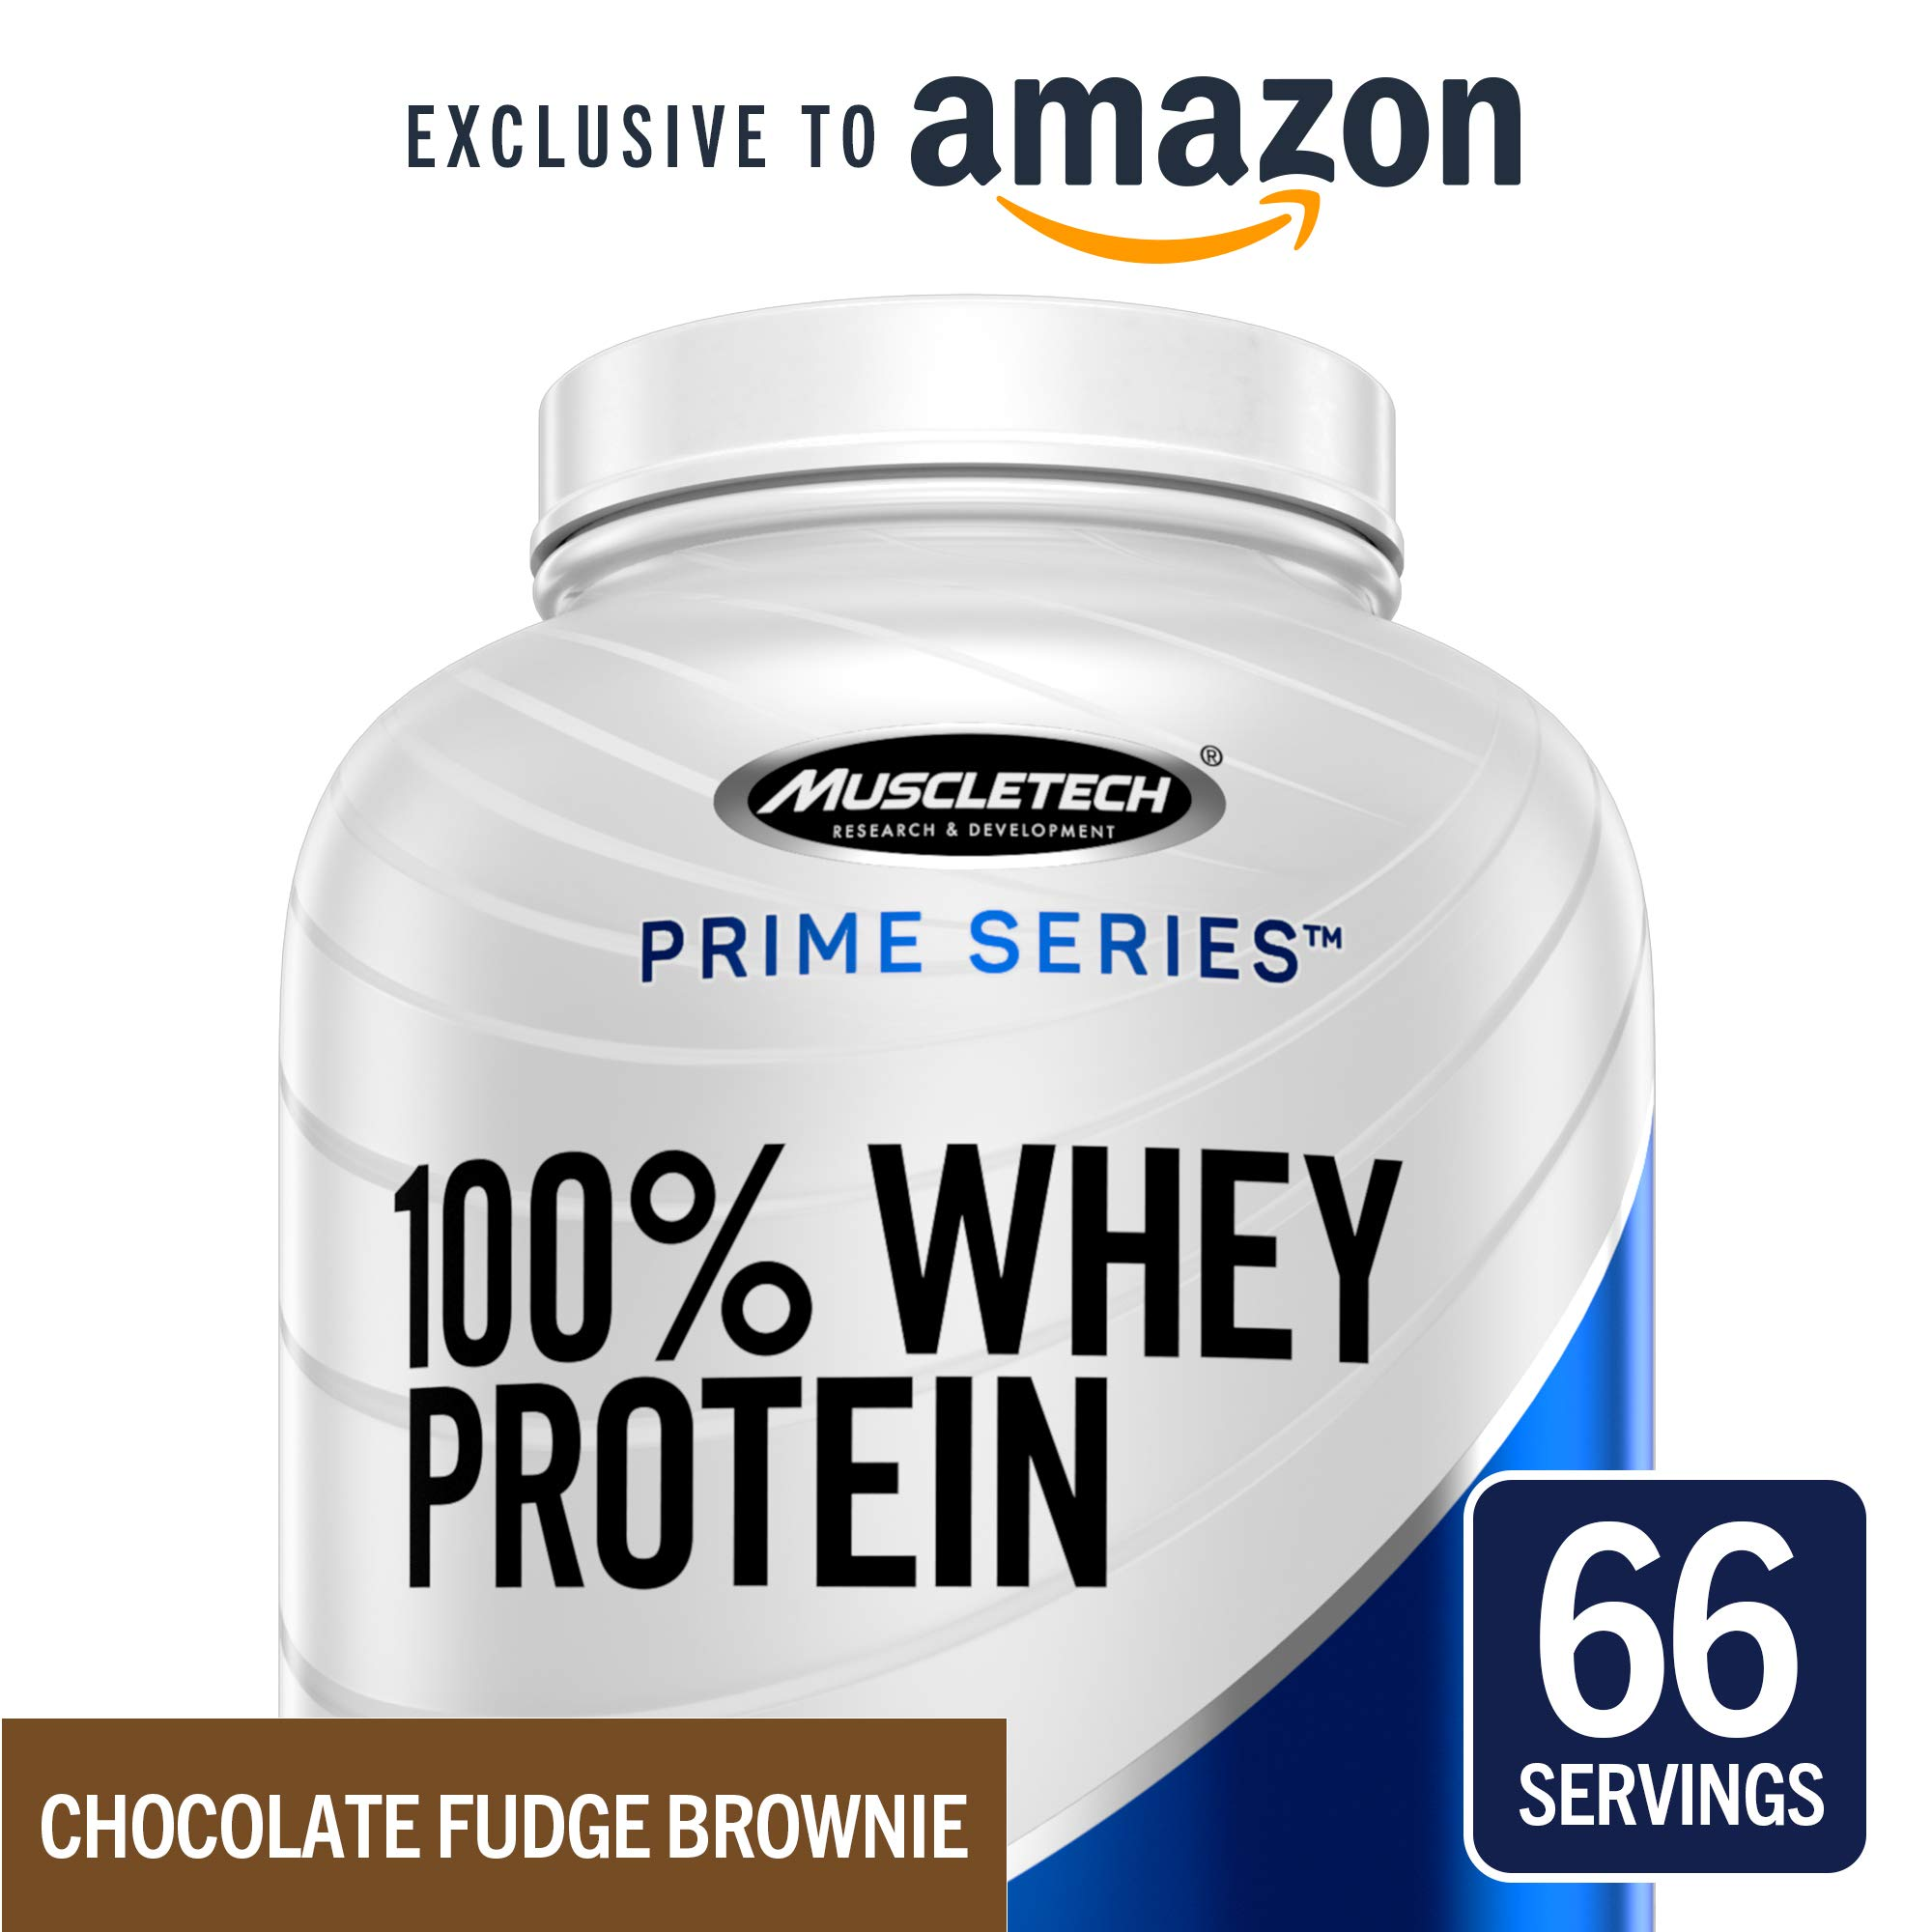 MuscleTech Prime Series 100% Whey Protein Powder, 25g Premium Protein, Research Proven Whey & Peptides for Faster Absorption, Chocolate, 66 Servings (5.0lbs) - Amazon Exclusive